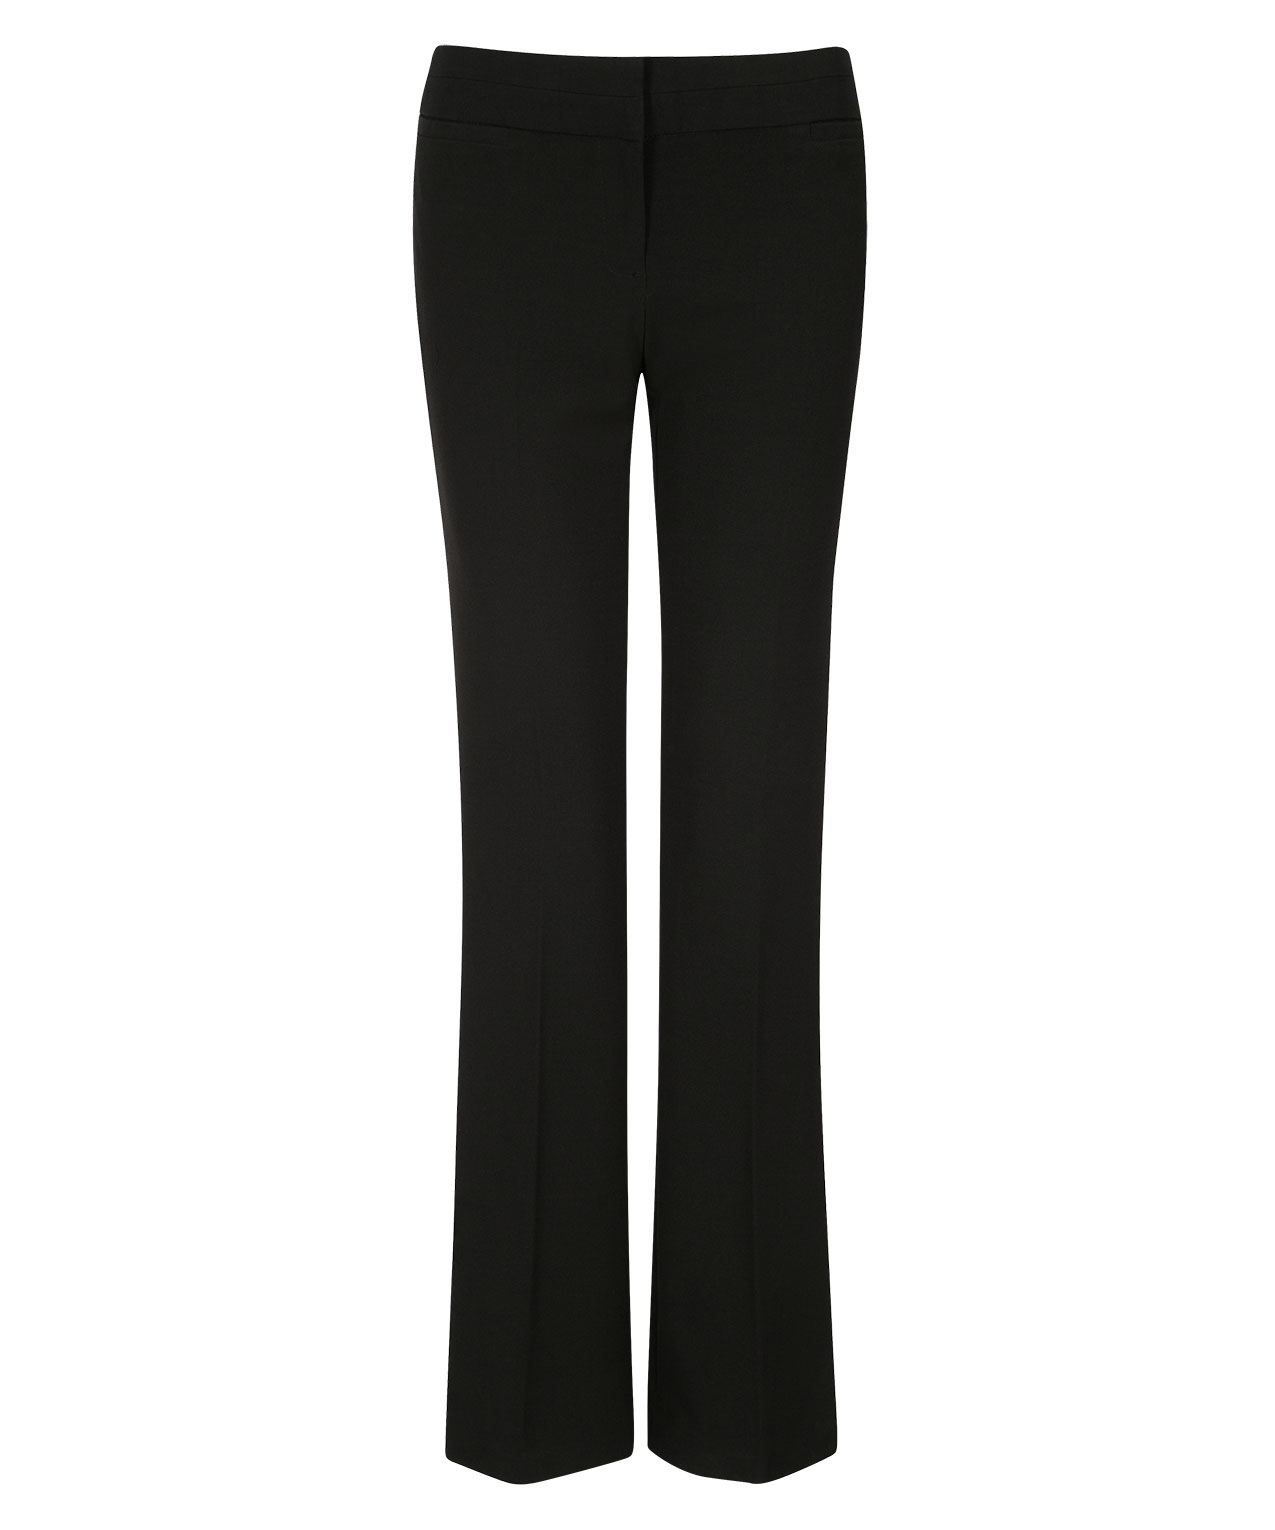 49a121266 Straight Fit Classic Bootcut Pant, Black, hi-res